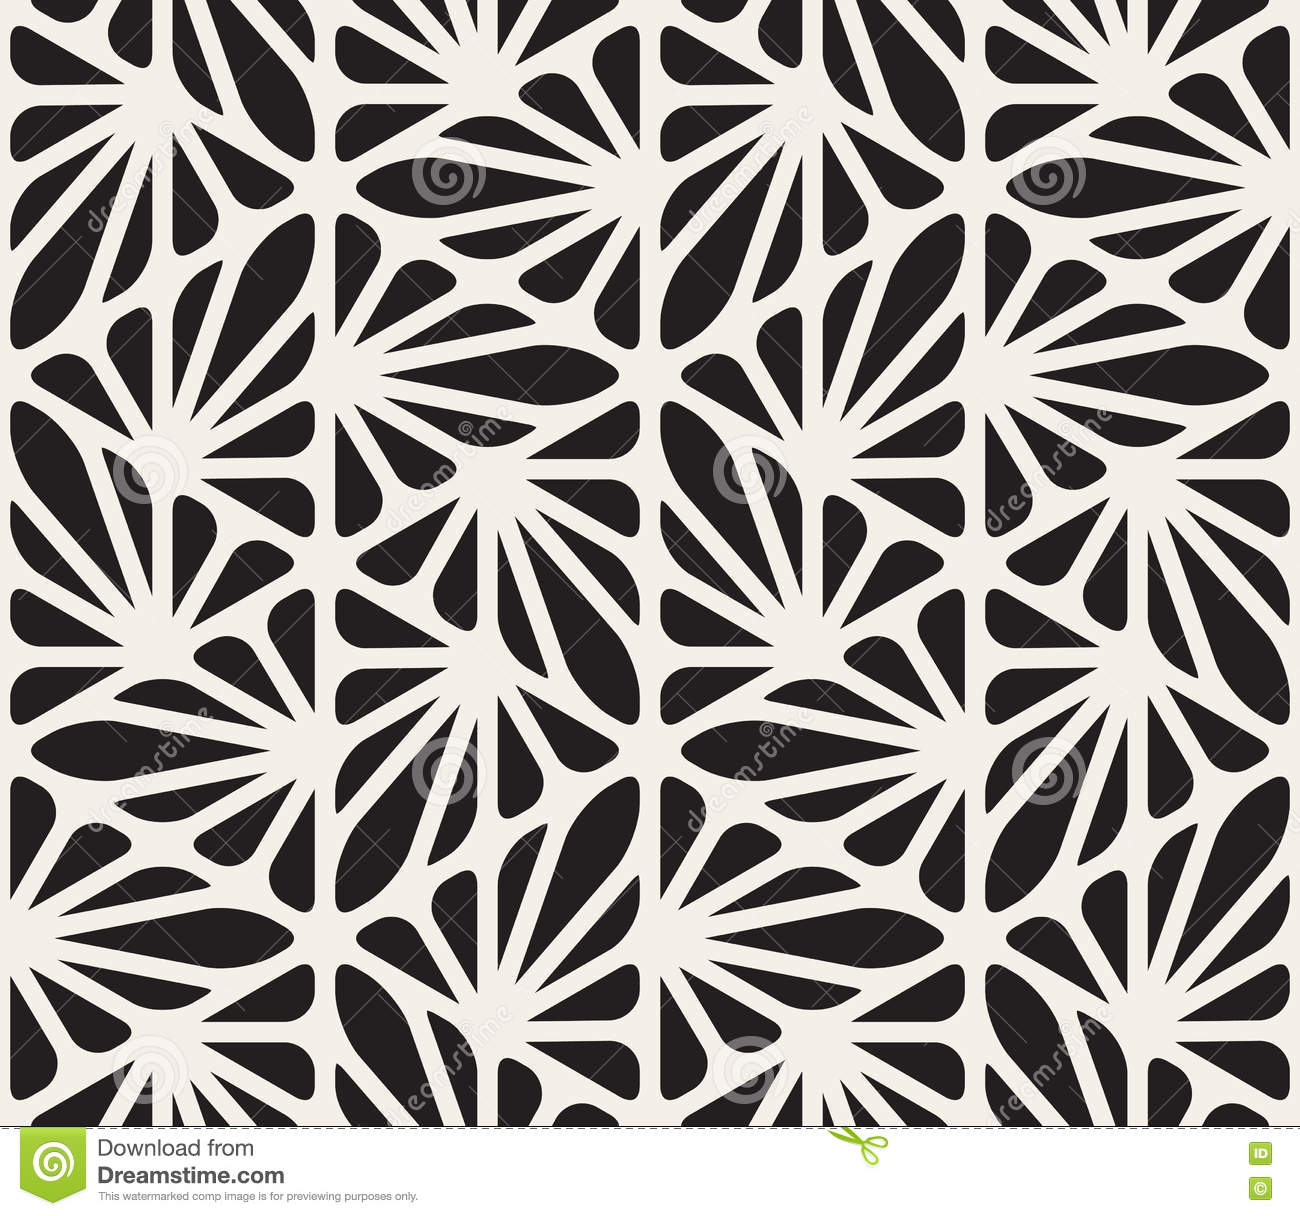 vector seamless black and white floral organic triangle